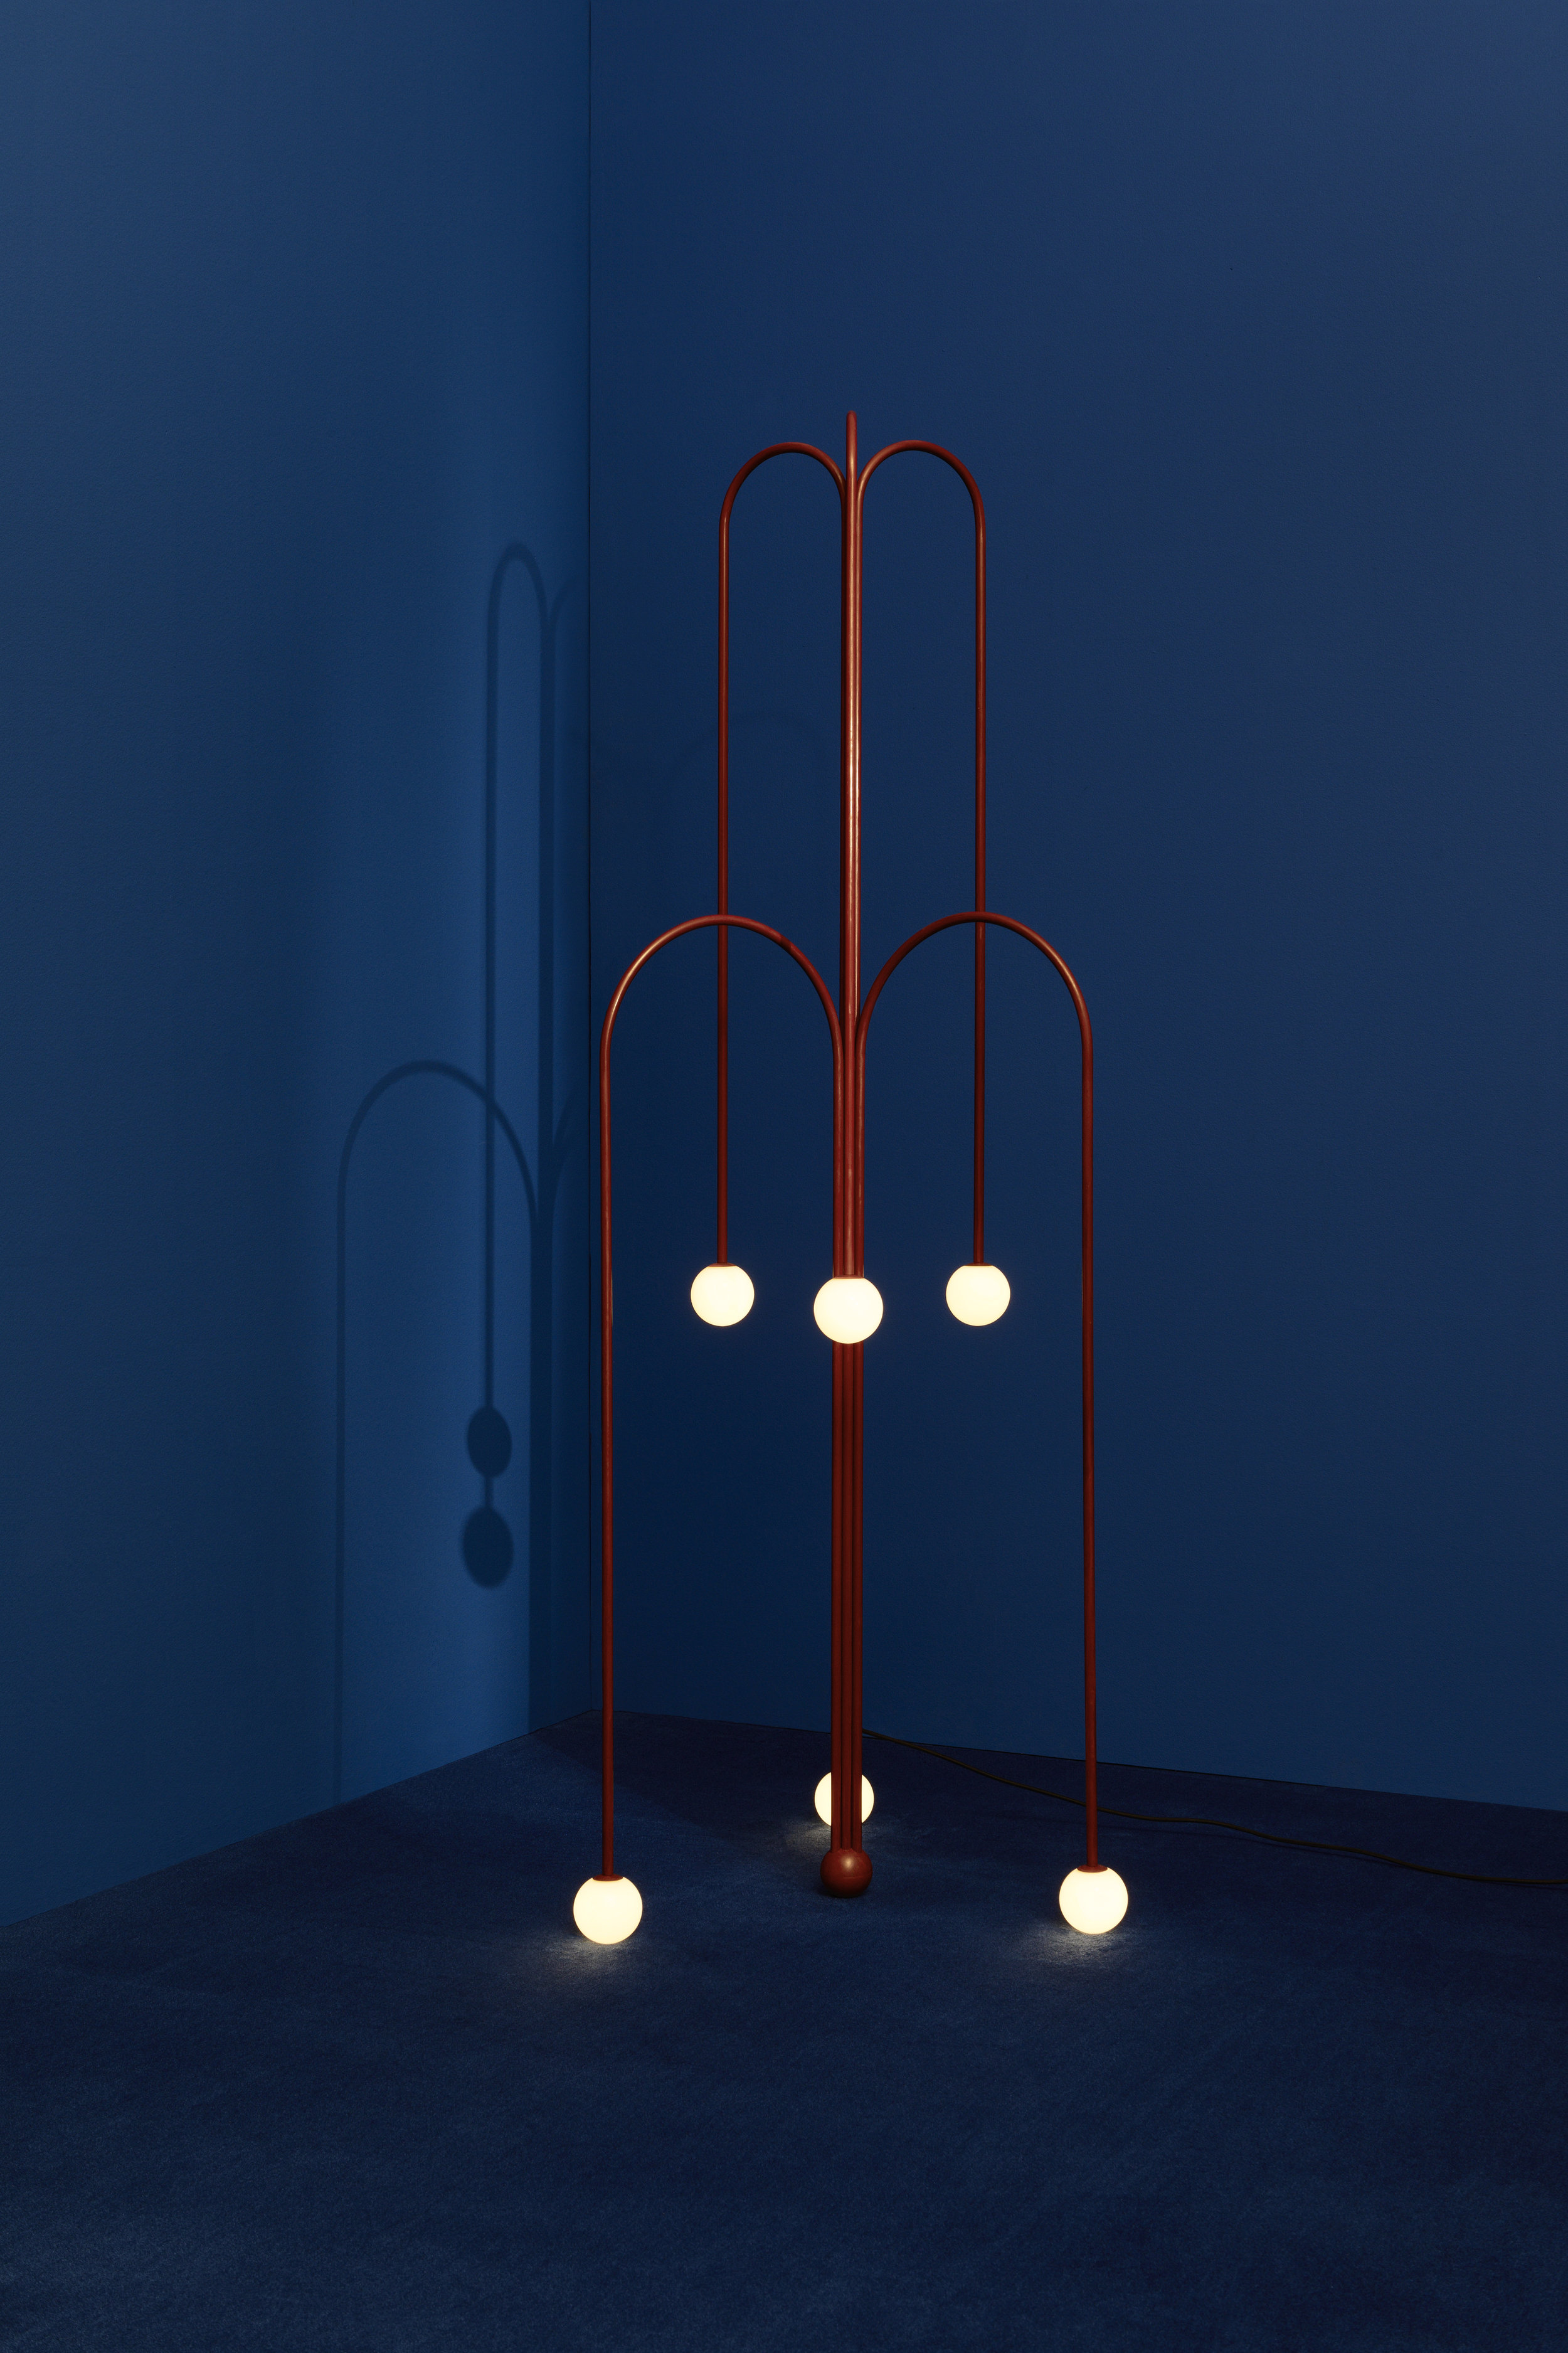 """Two """"Crossette"""" floor lamps – Fontana Amorosa collection, UK, 2017, on display at Nilufar stand, Design Miam/ Basel 2018  Design: Michael Anastassiades 6 lights, Nilufar limited edition of 45 examples + 2 APs CE certificate provided Red patina brass, mouth blown opaline spheres Black braided flex, inline dimmer; size: diam 72 x h 180 cm 